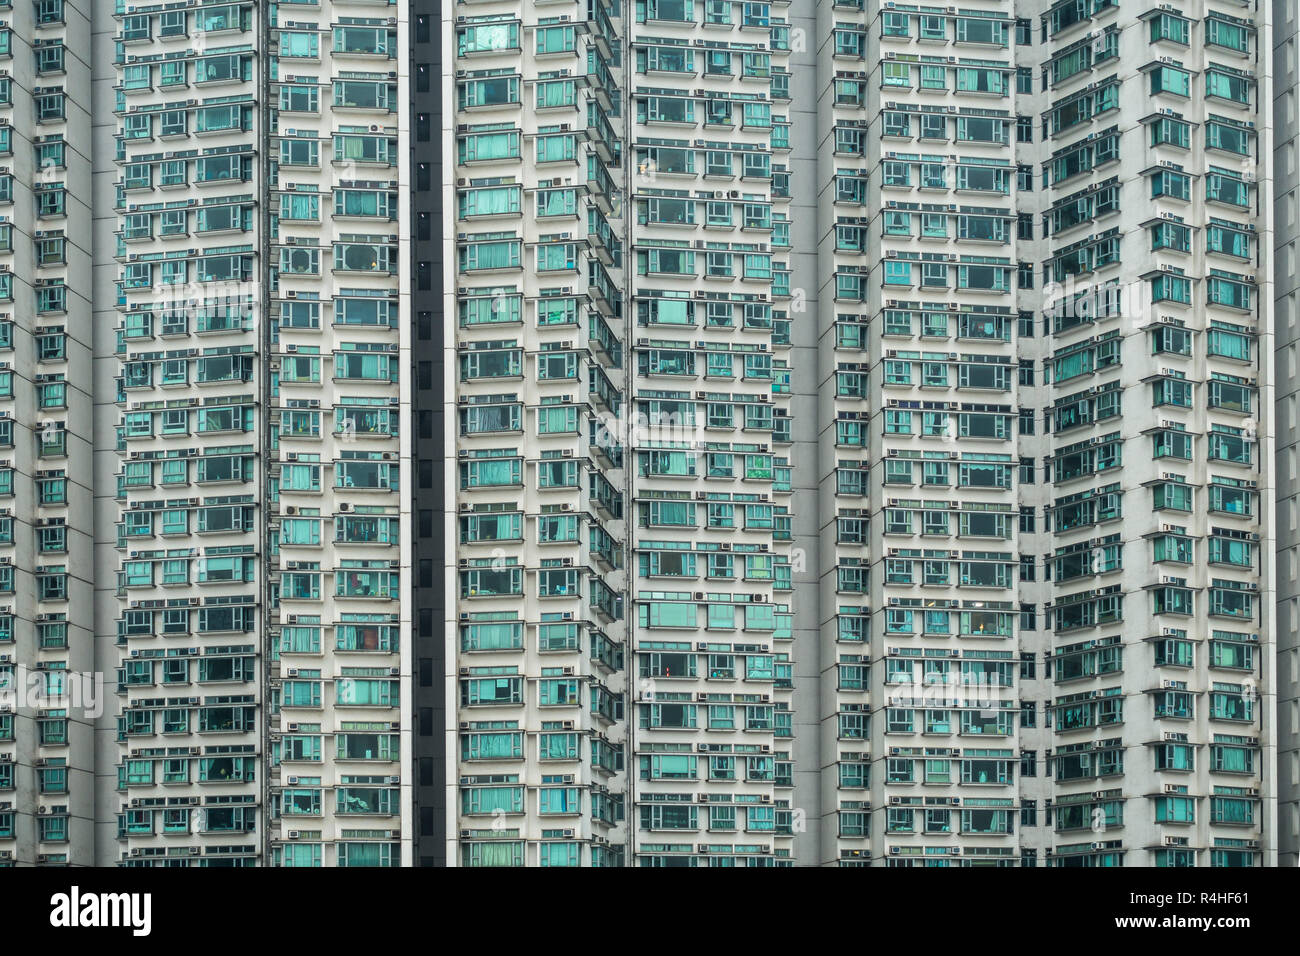 Hong Kong residential apartments block in Tung Chung area. Hong Kong is one of most densely populated city in the world - Stock Image